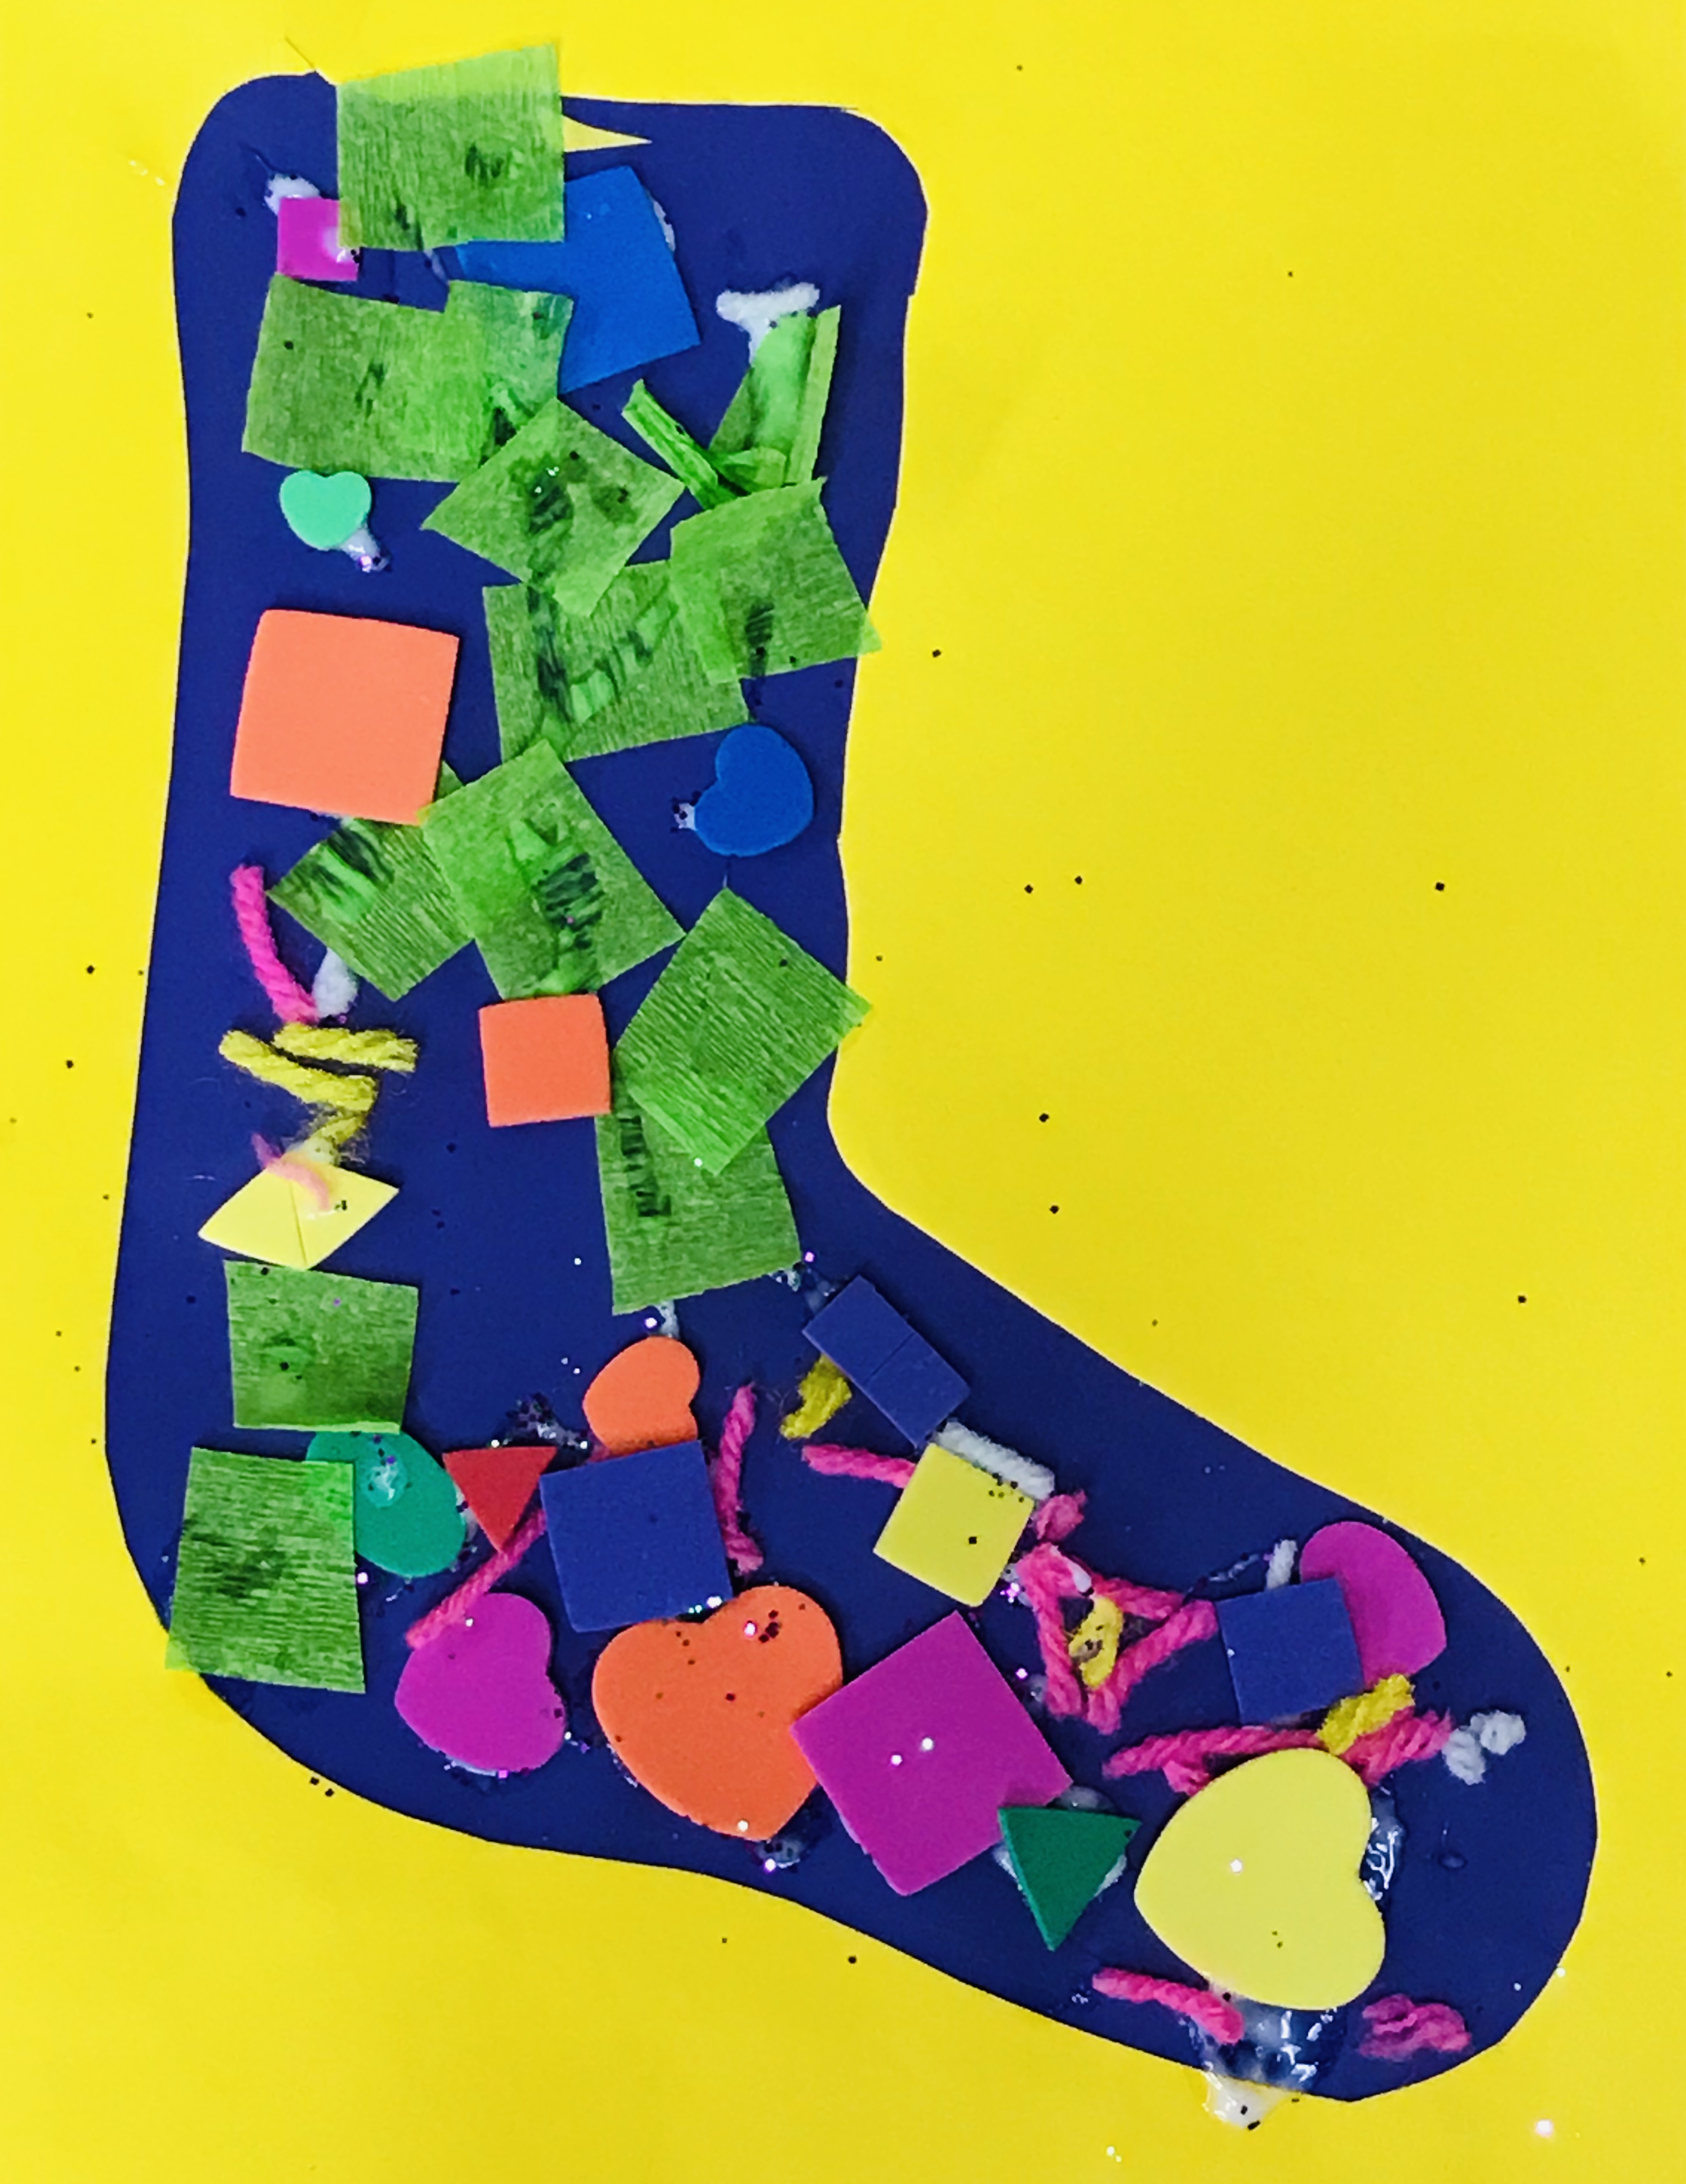 Paper sock with various shapes